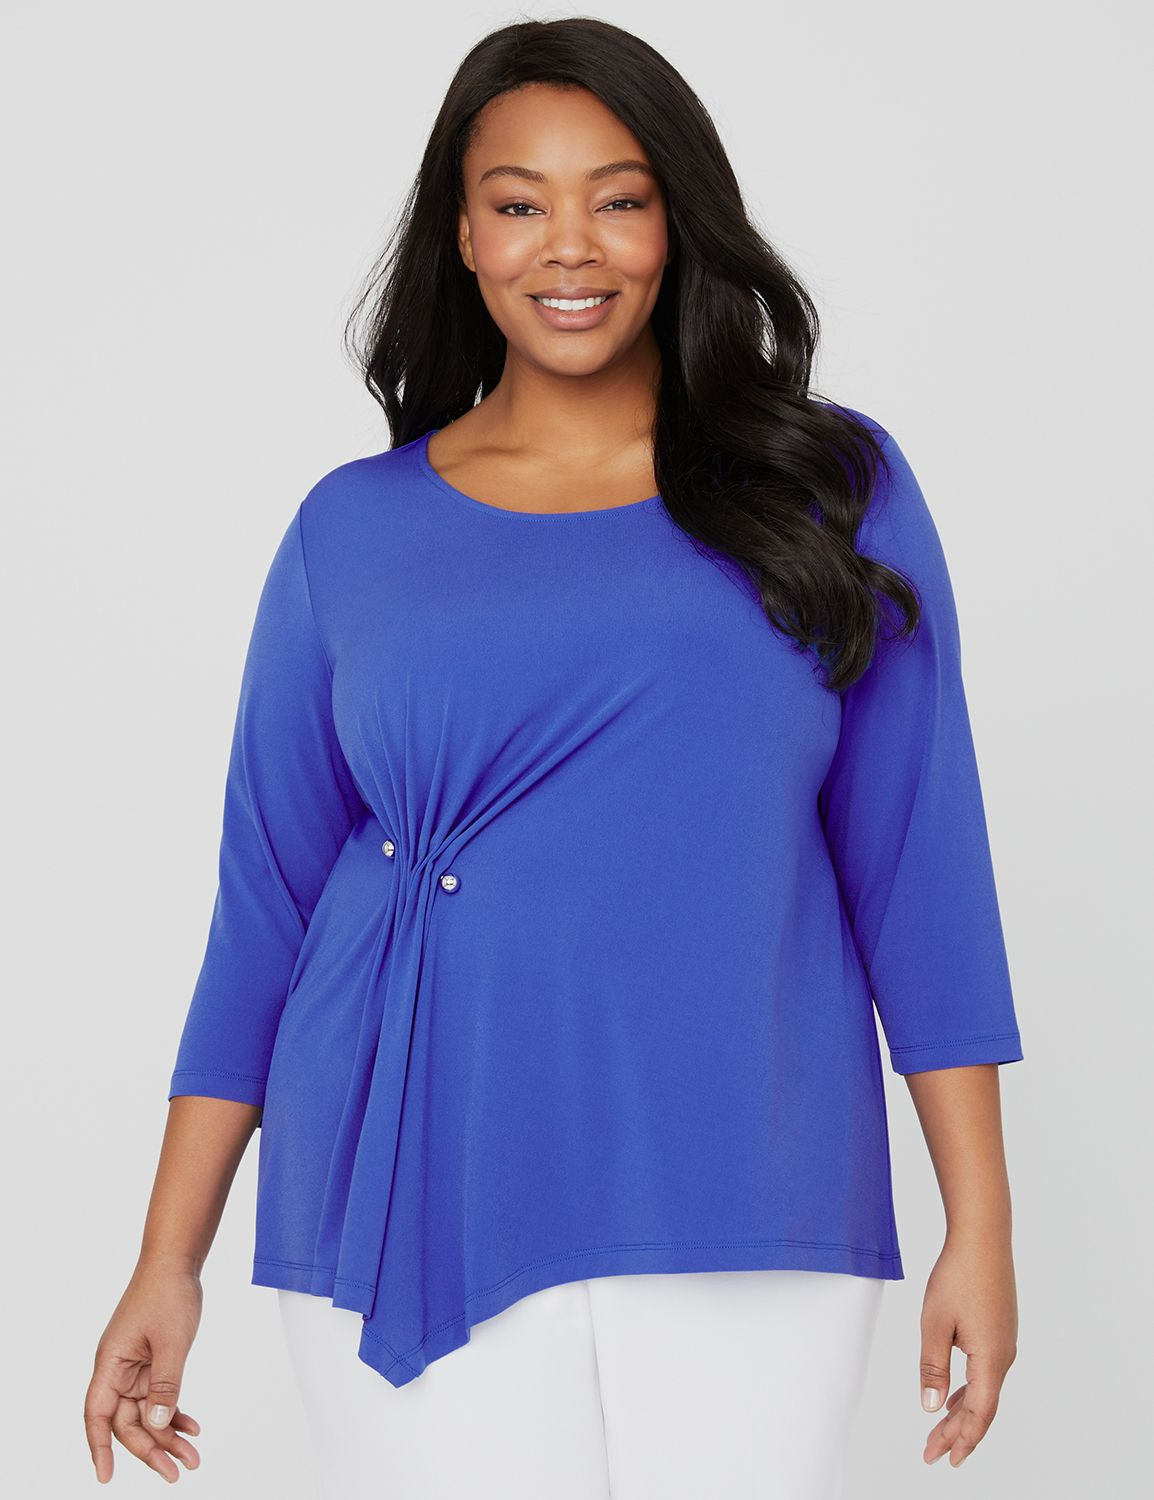 Black Label Blue Diamond Top 1090803 Asymmetrical Knit Top with MP-300102572